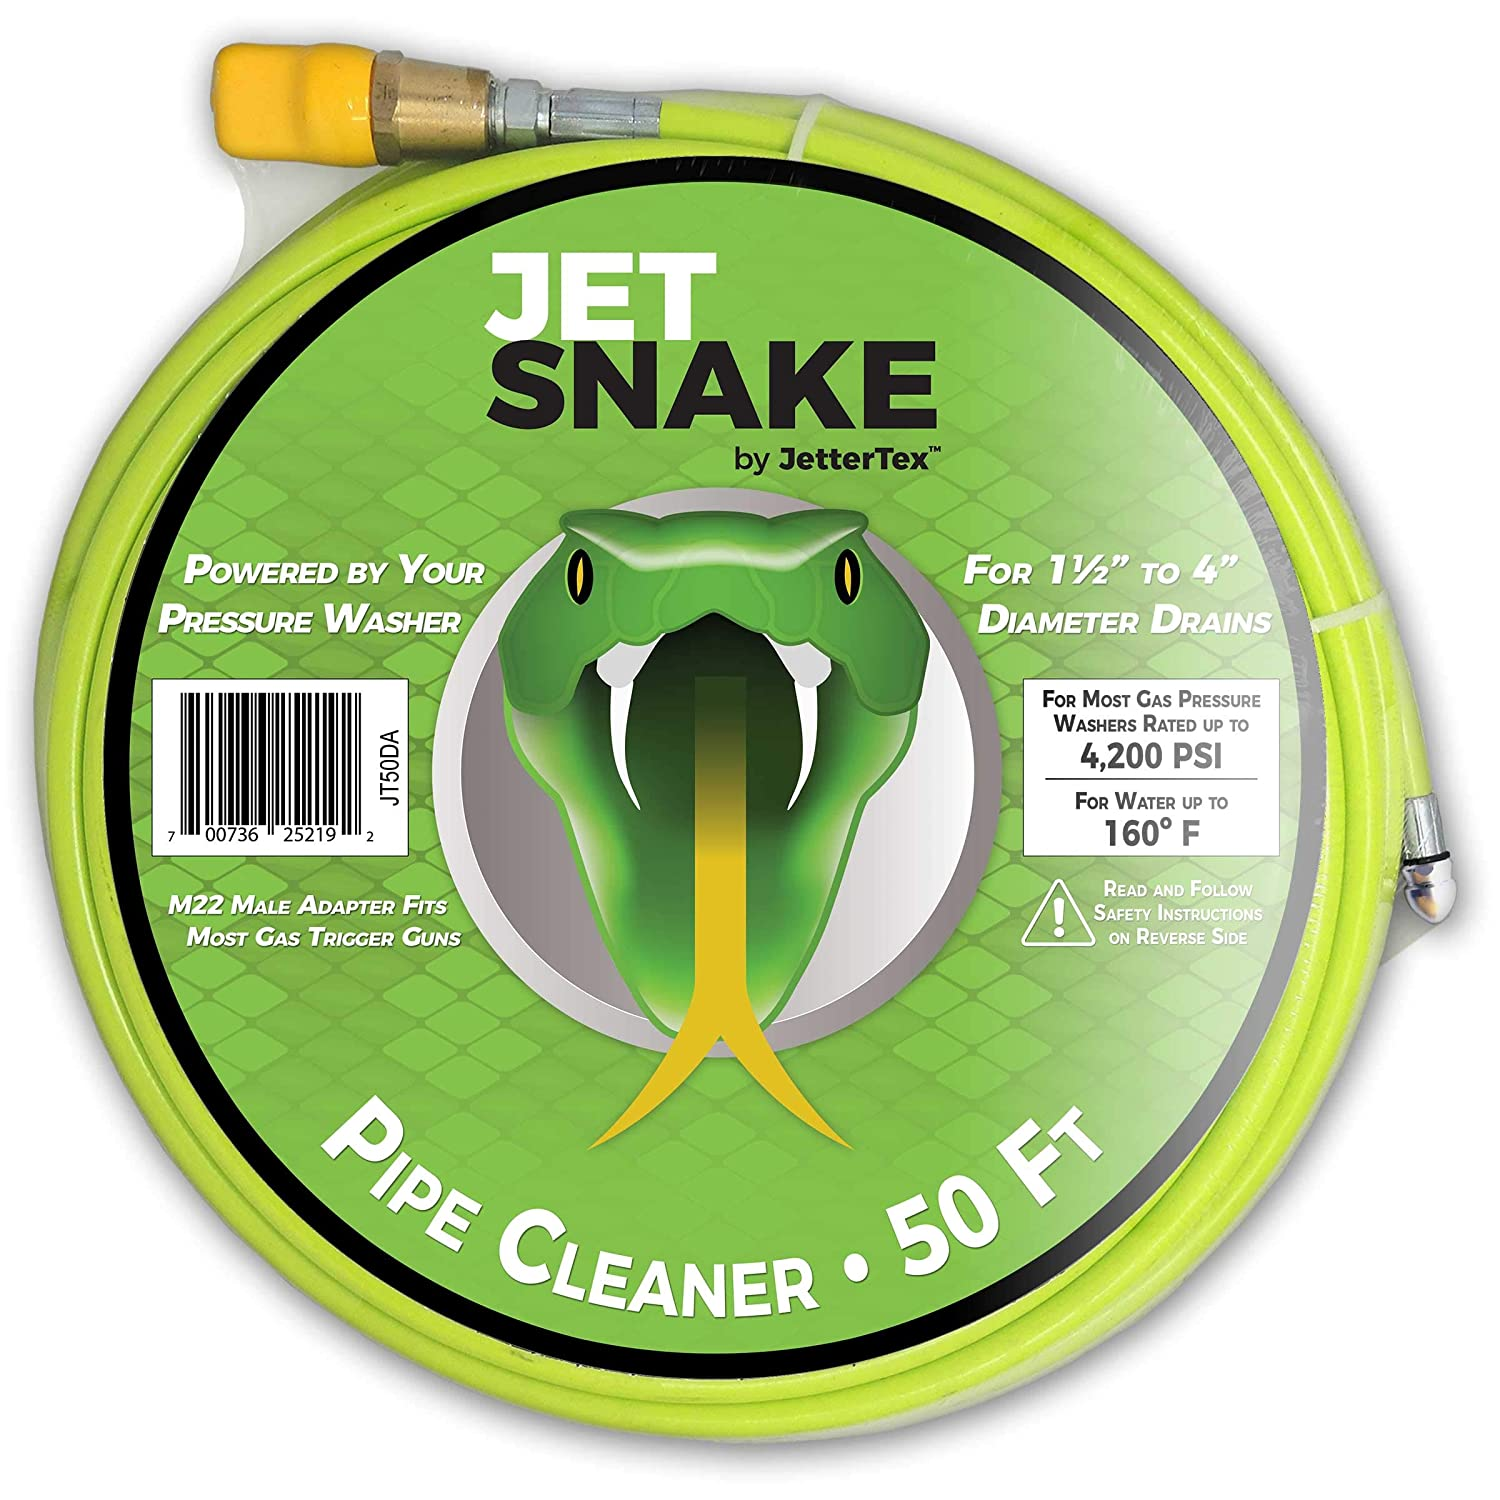 JetSnake Sewer Jetter - 50 FT Drain Cleaner for Your Gas Pressure Washer